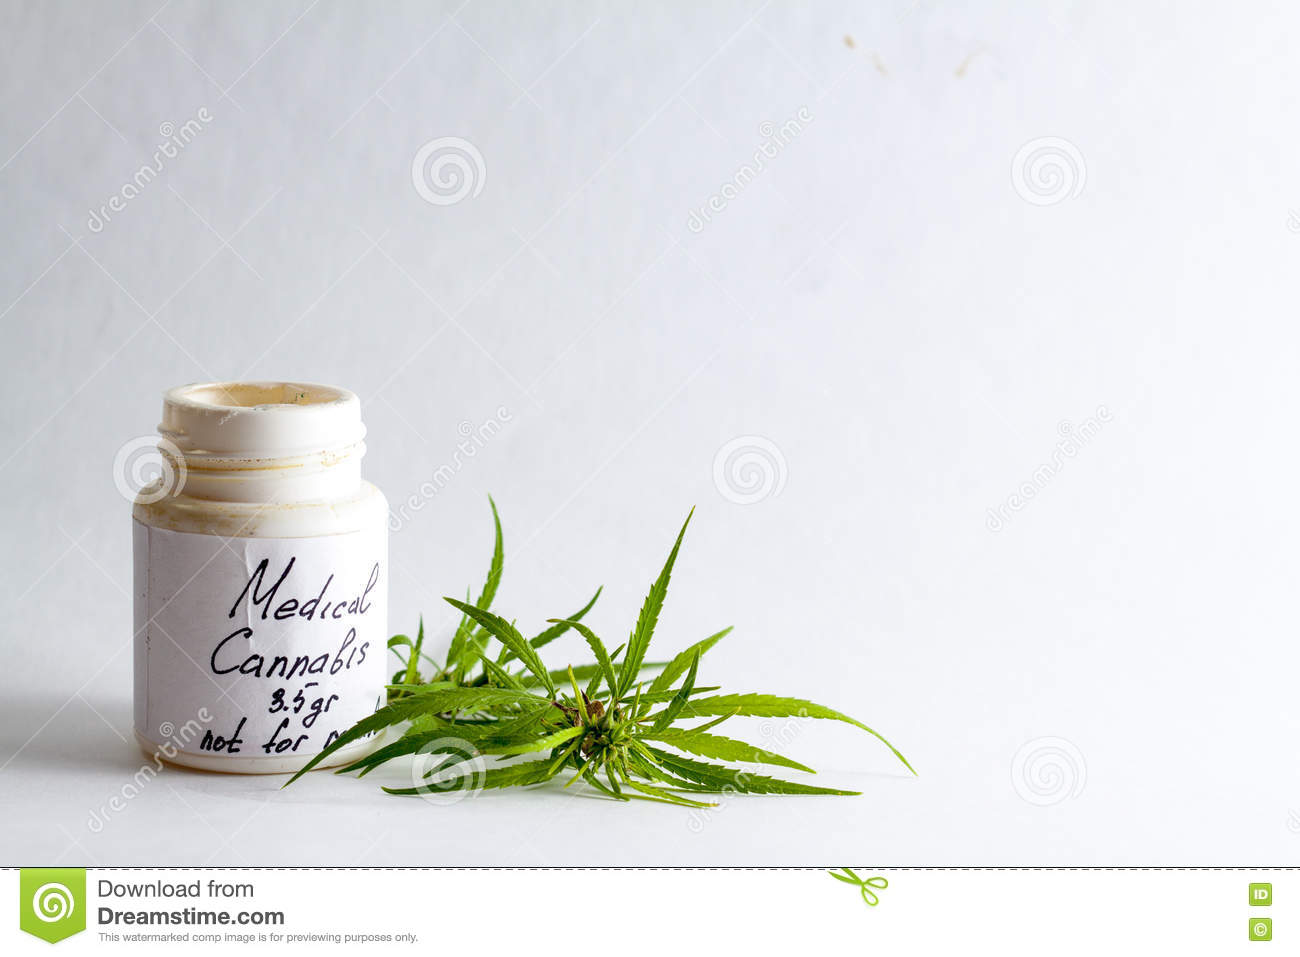 Medical marijuana cannabis for the treatment of a doctor